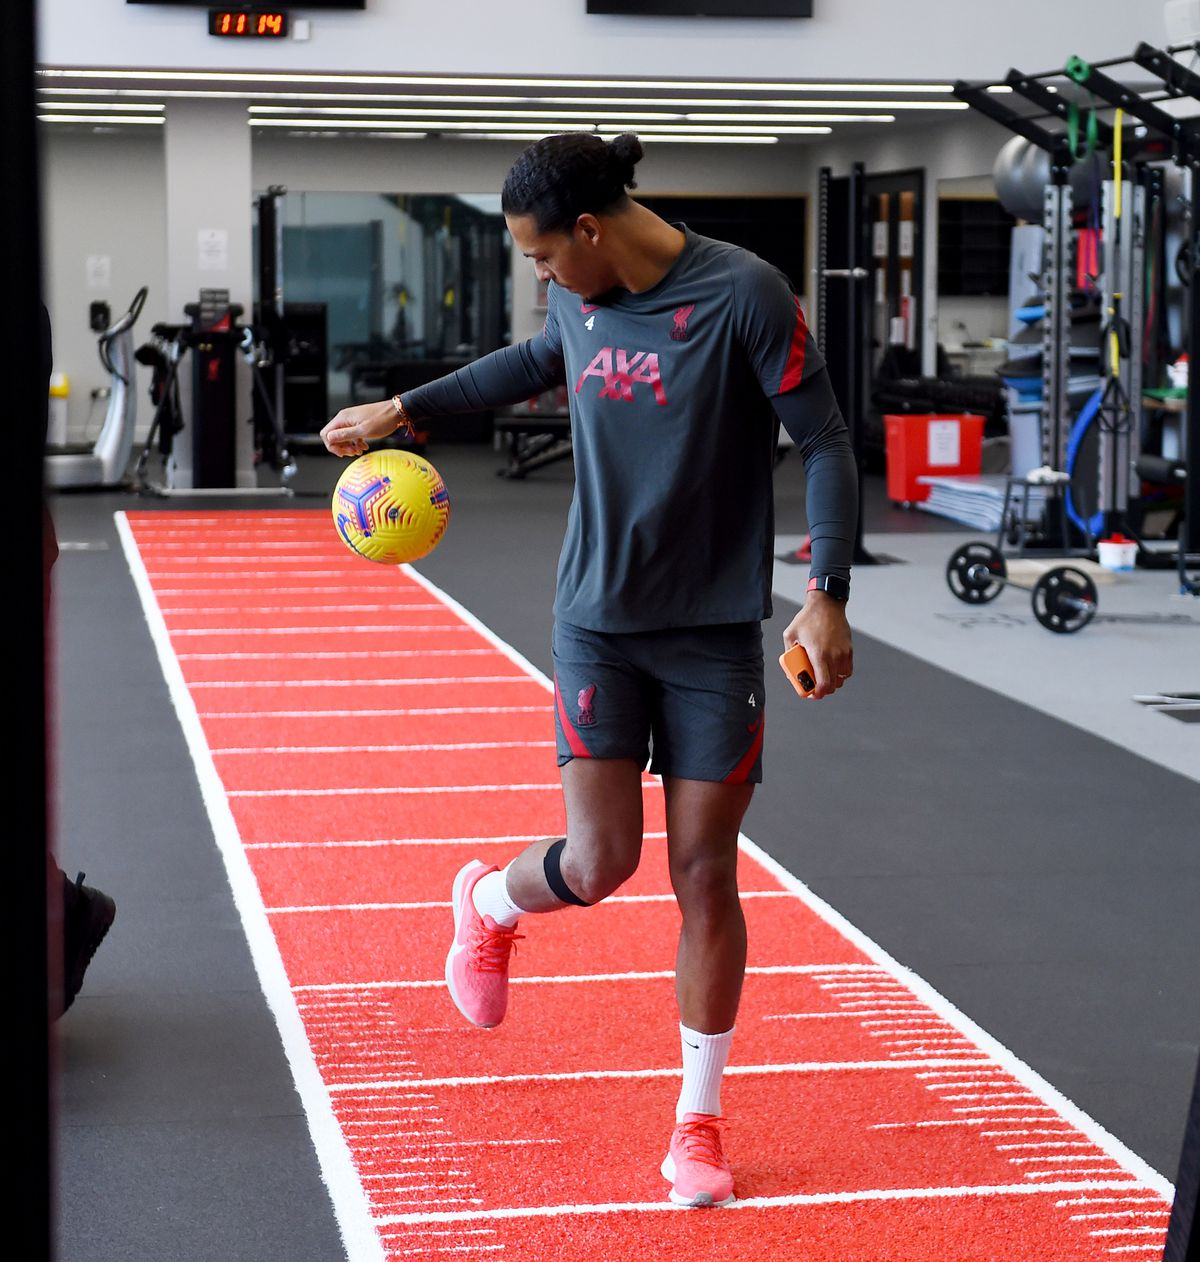 Virgil has a ball out! Playing about with a football!